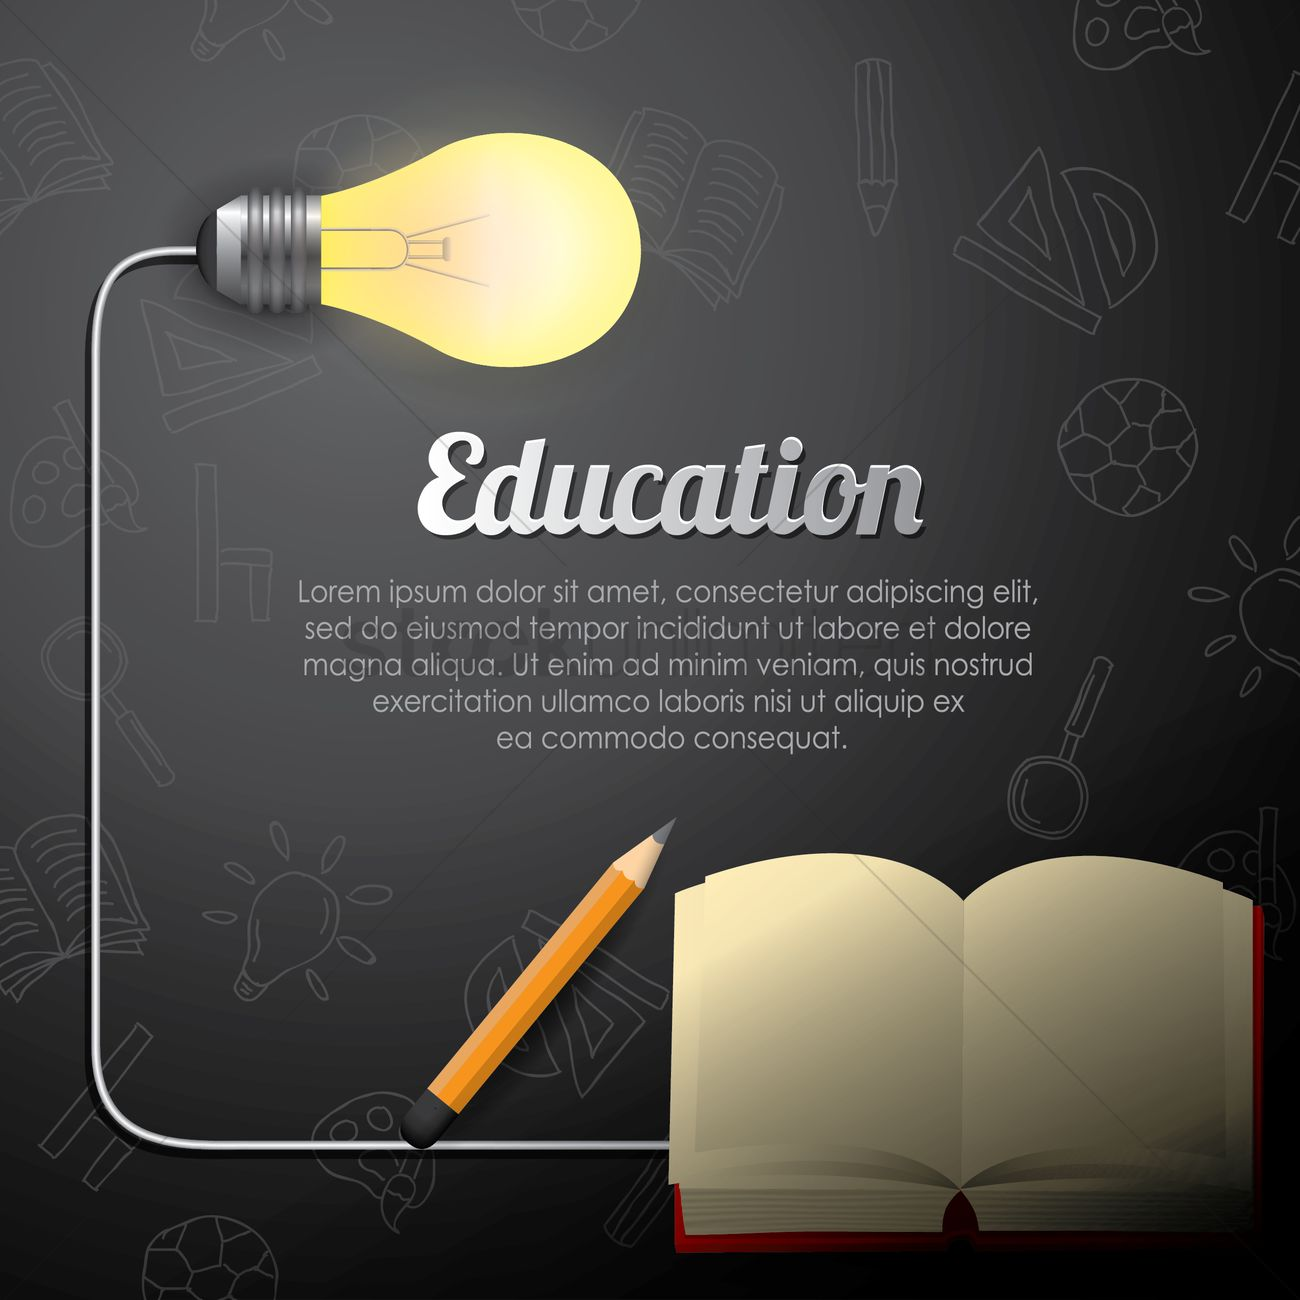 education wallpaper vector image 1821879 stockunlimited